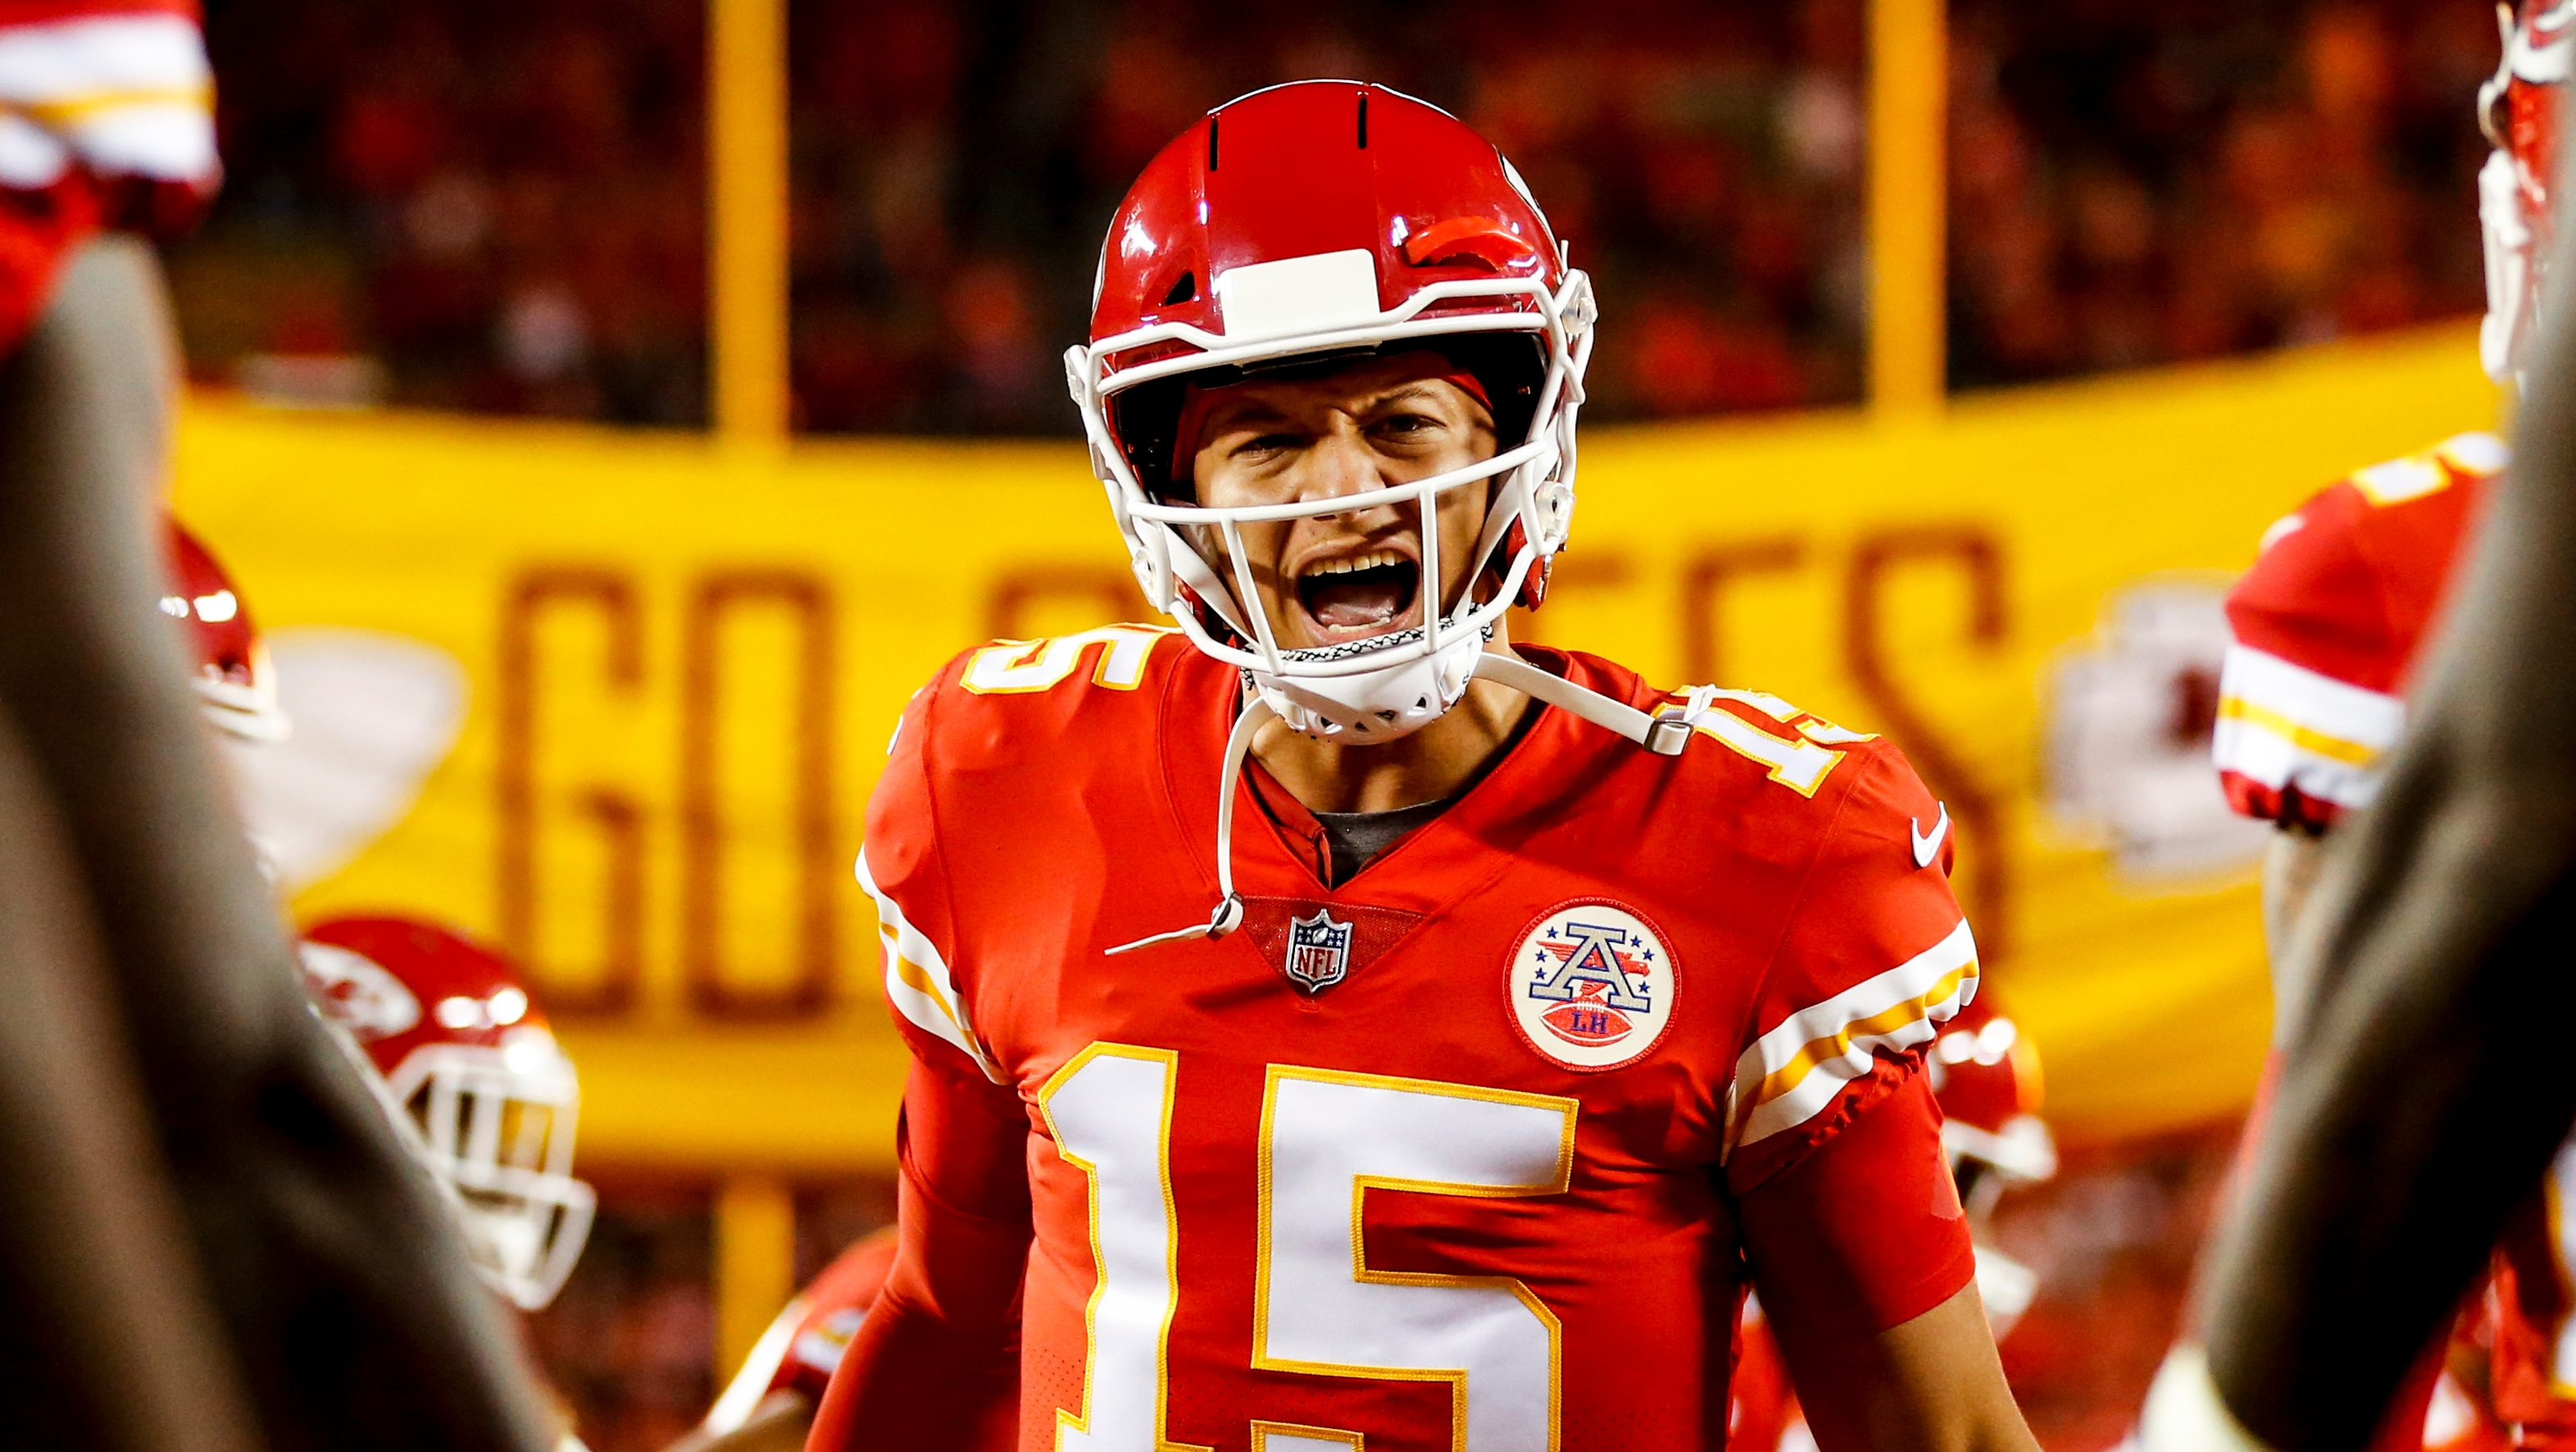 Chiefs colts betting preview blackjack betting strategy hiload